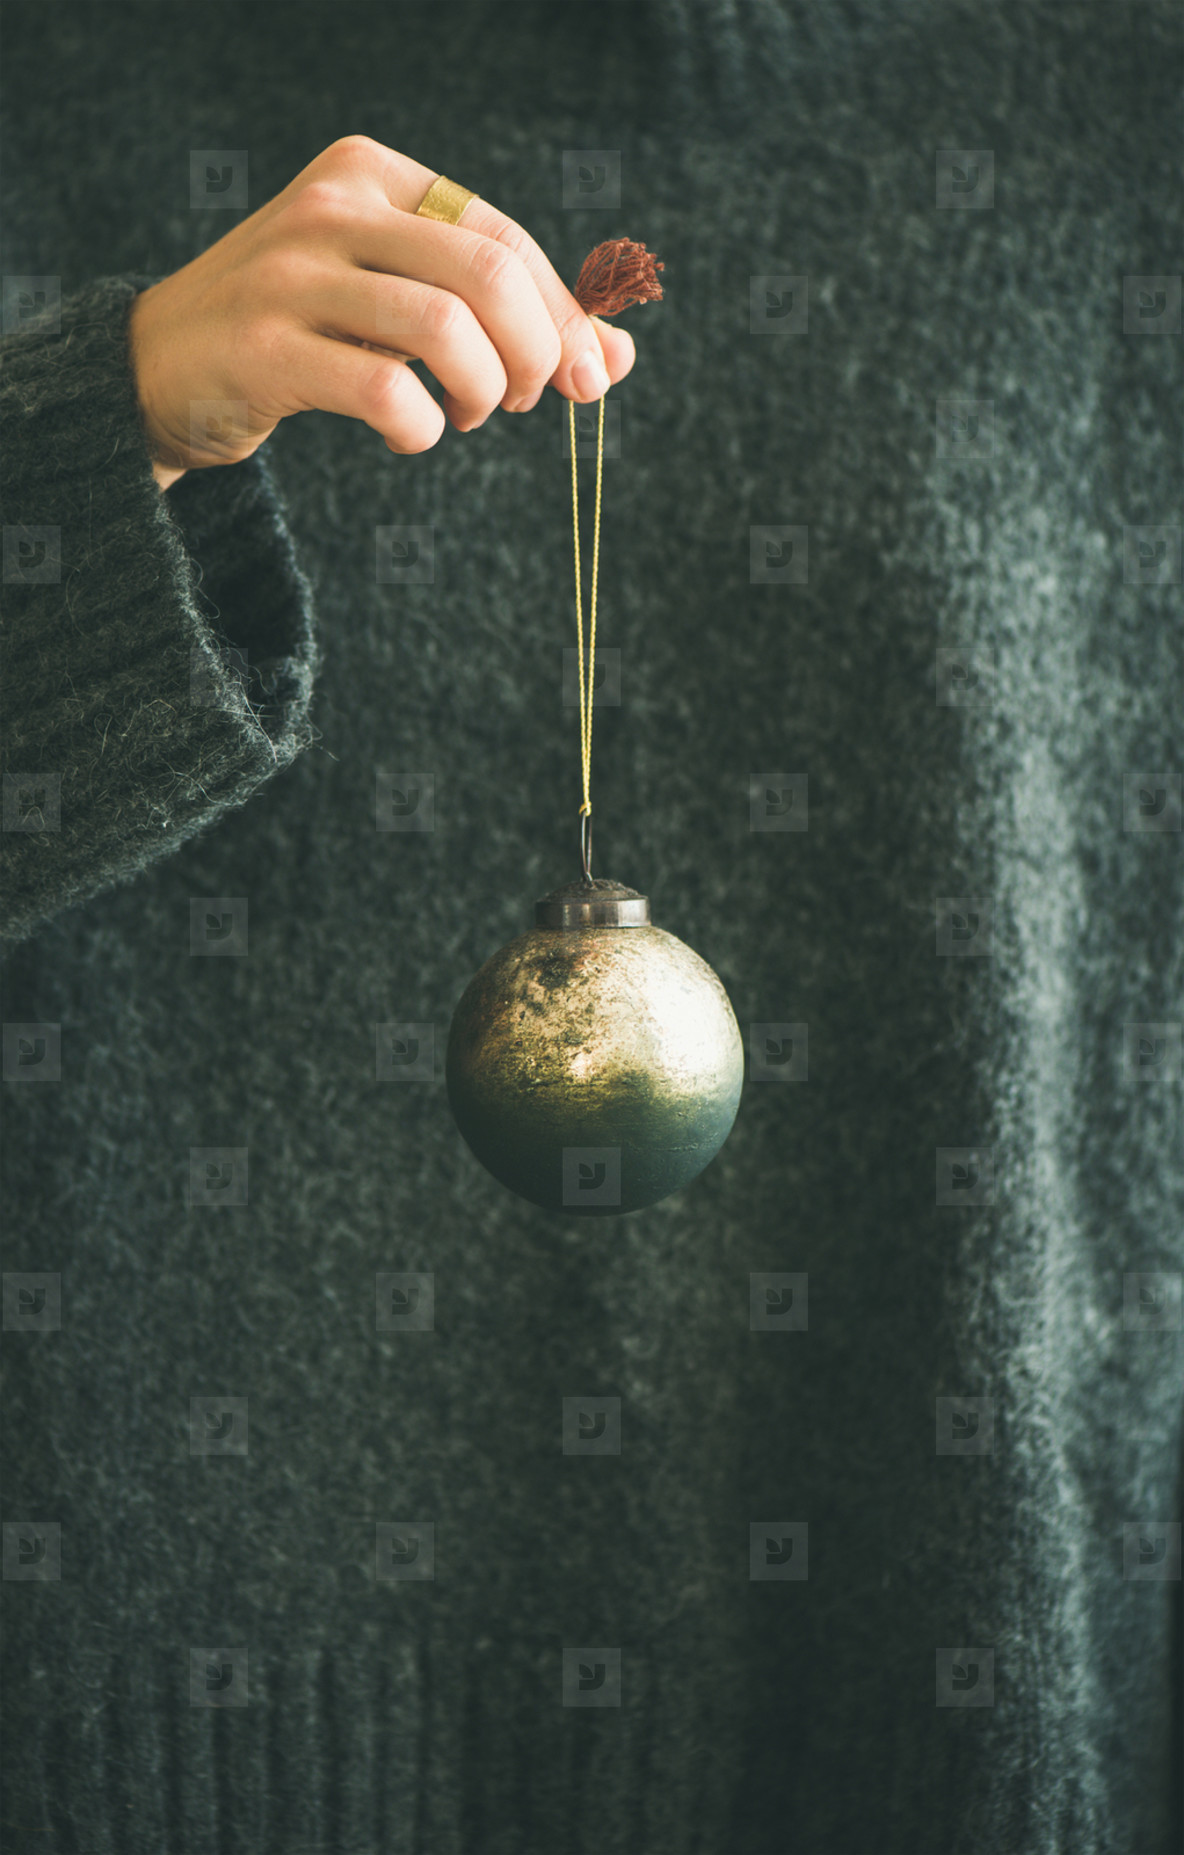 Woman in grey sweater holding decorative golden ball in hand